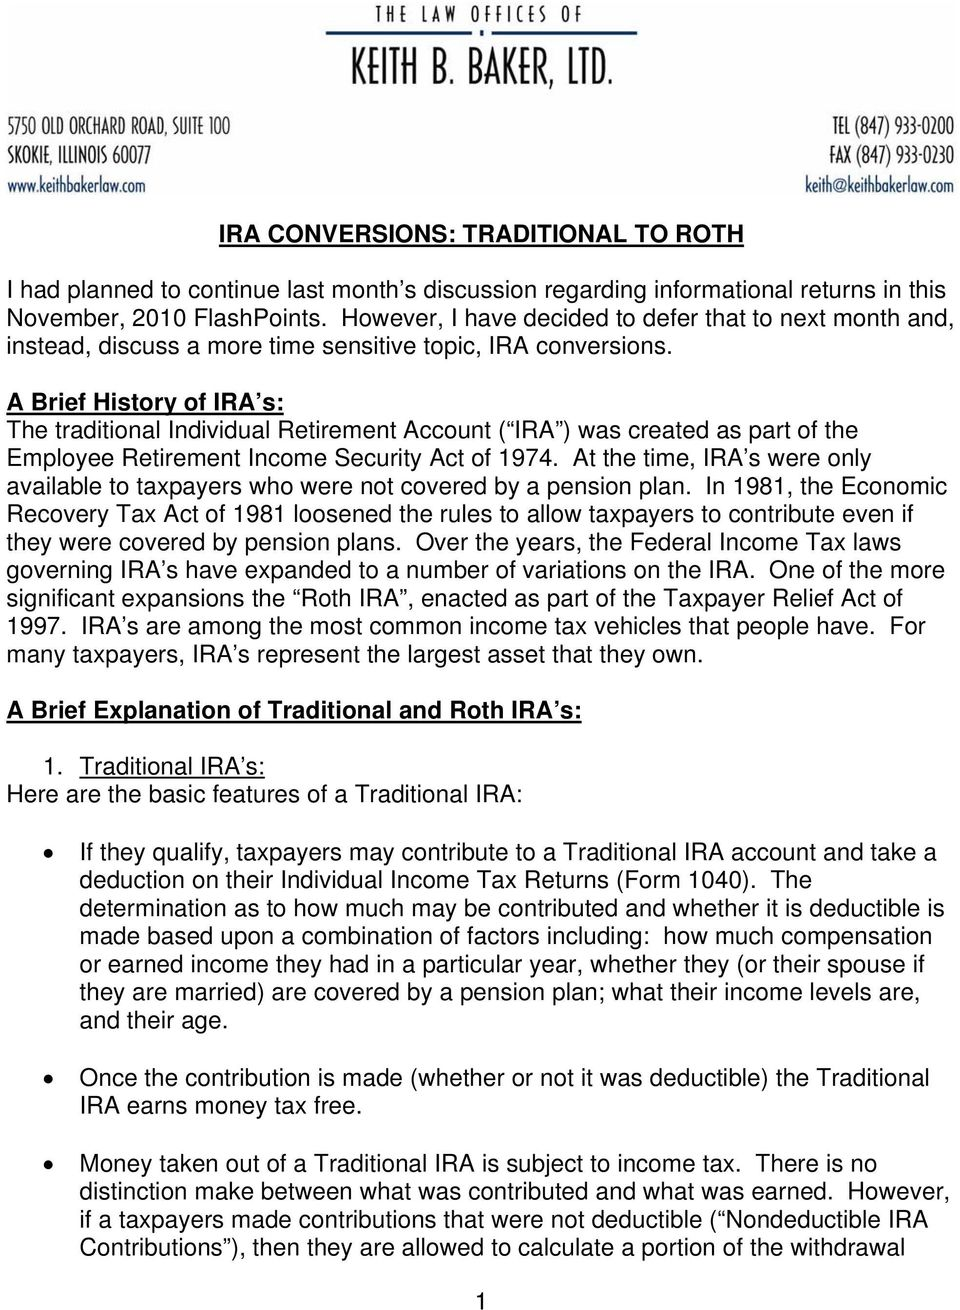 roth ira for dummies pdf